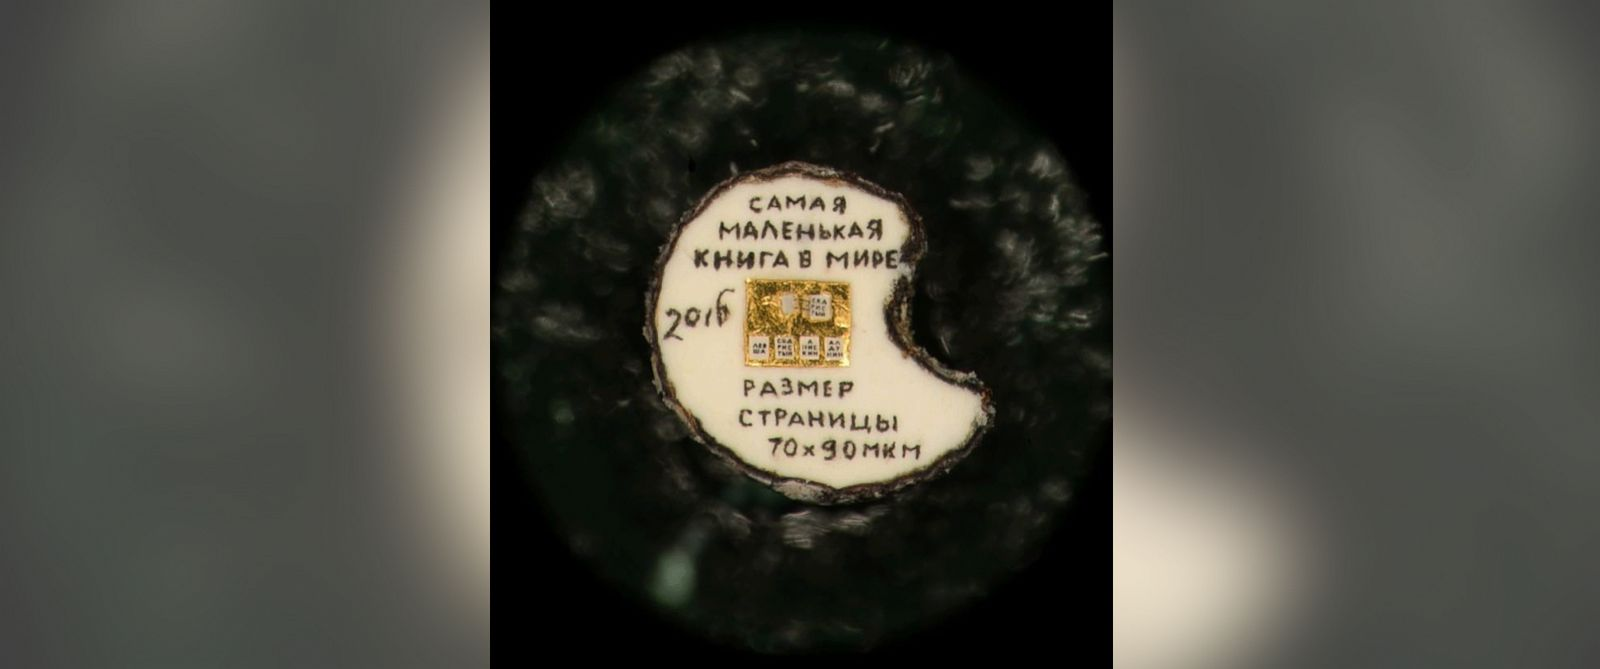 PHOTO: A Siberian man has created what he says is the smallest book in the world.